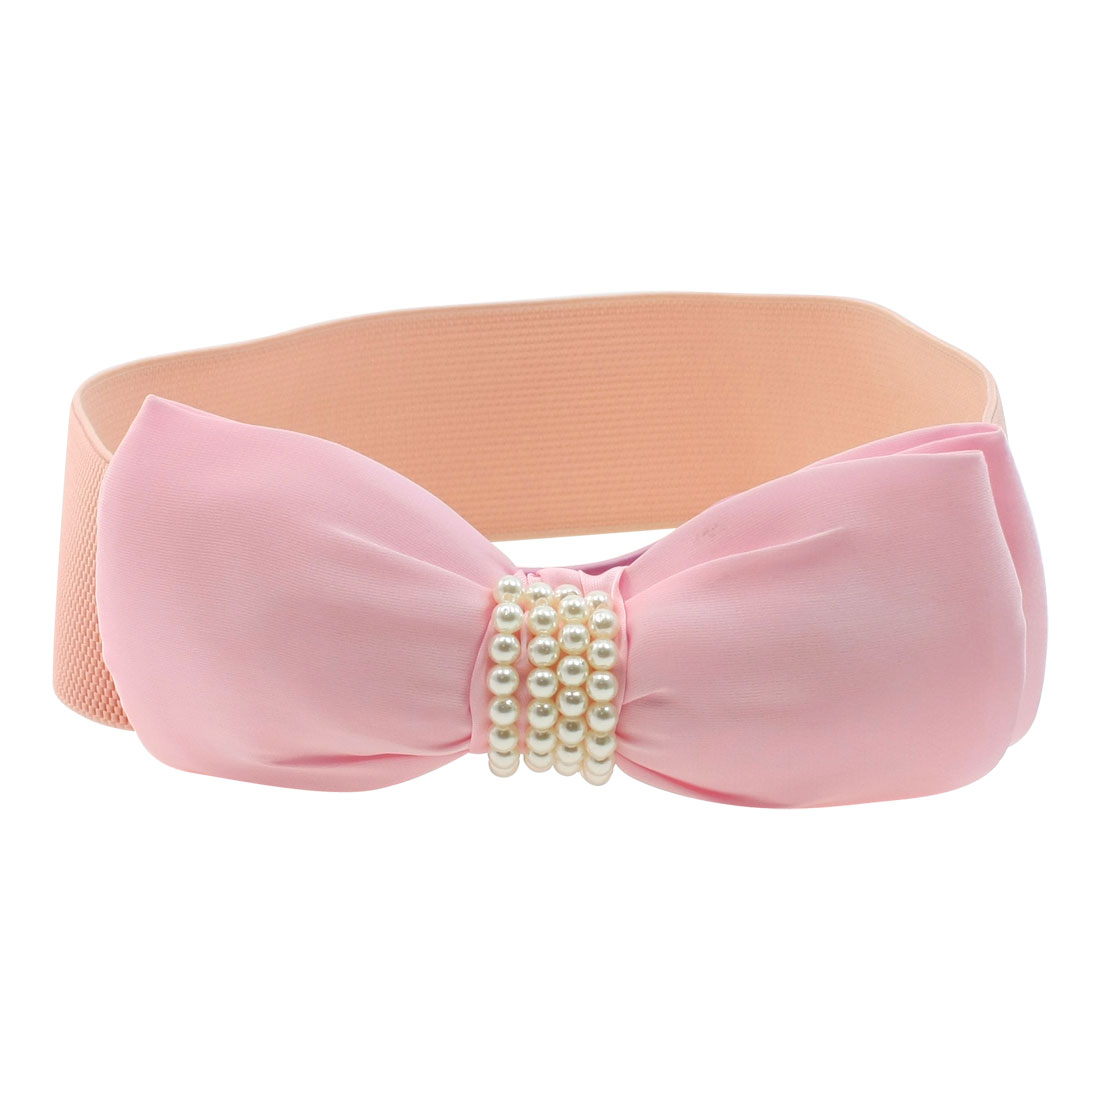 Plastic Bead Accent Pink Stretchy 6cm Wide Cinch Belt for Ladies